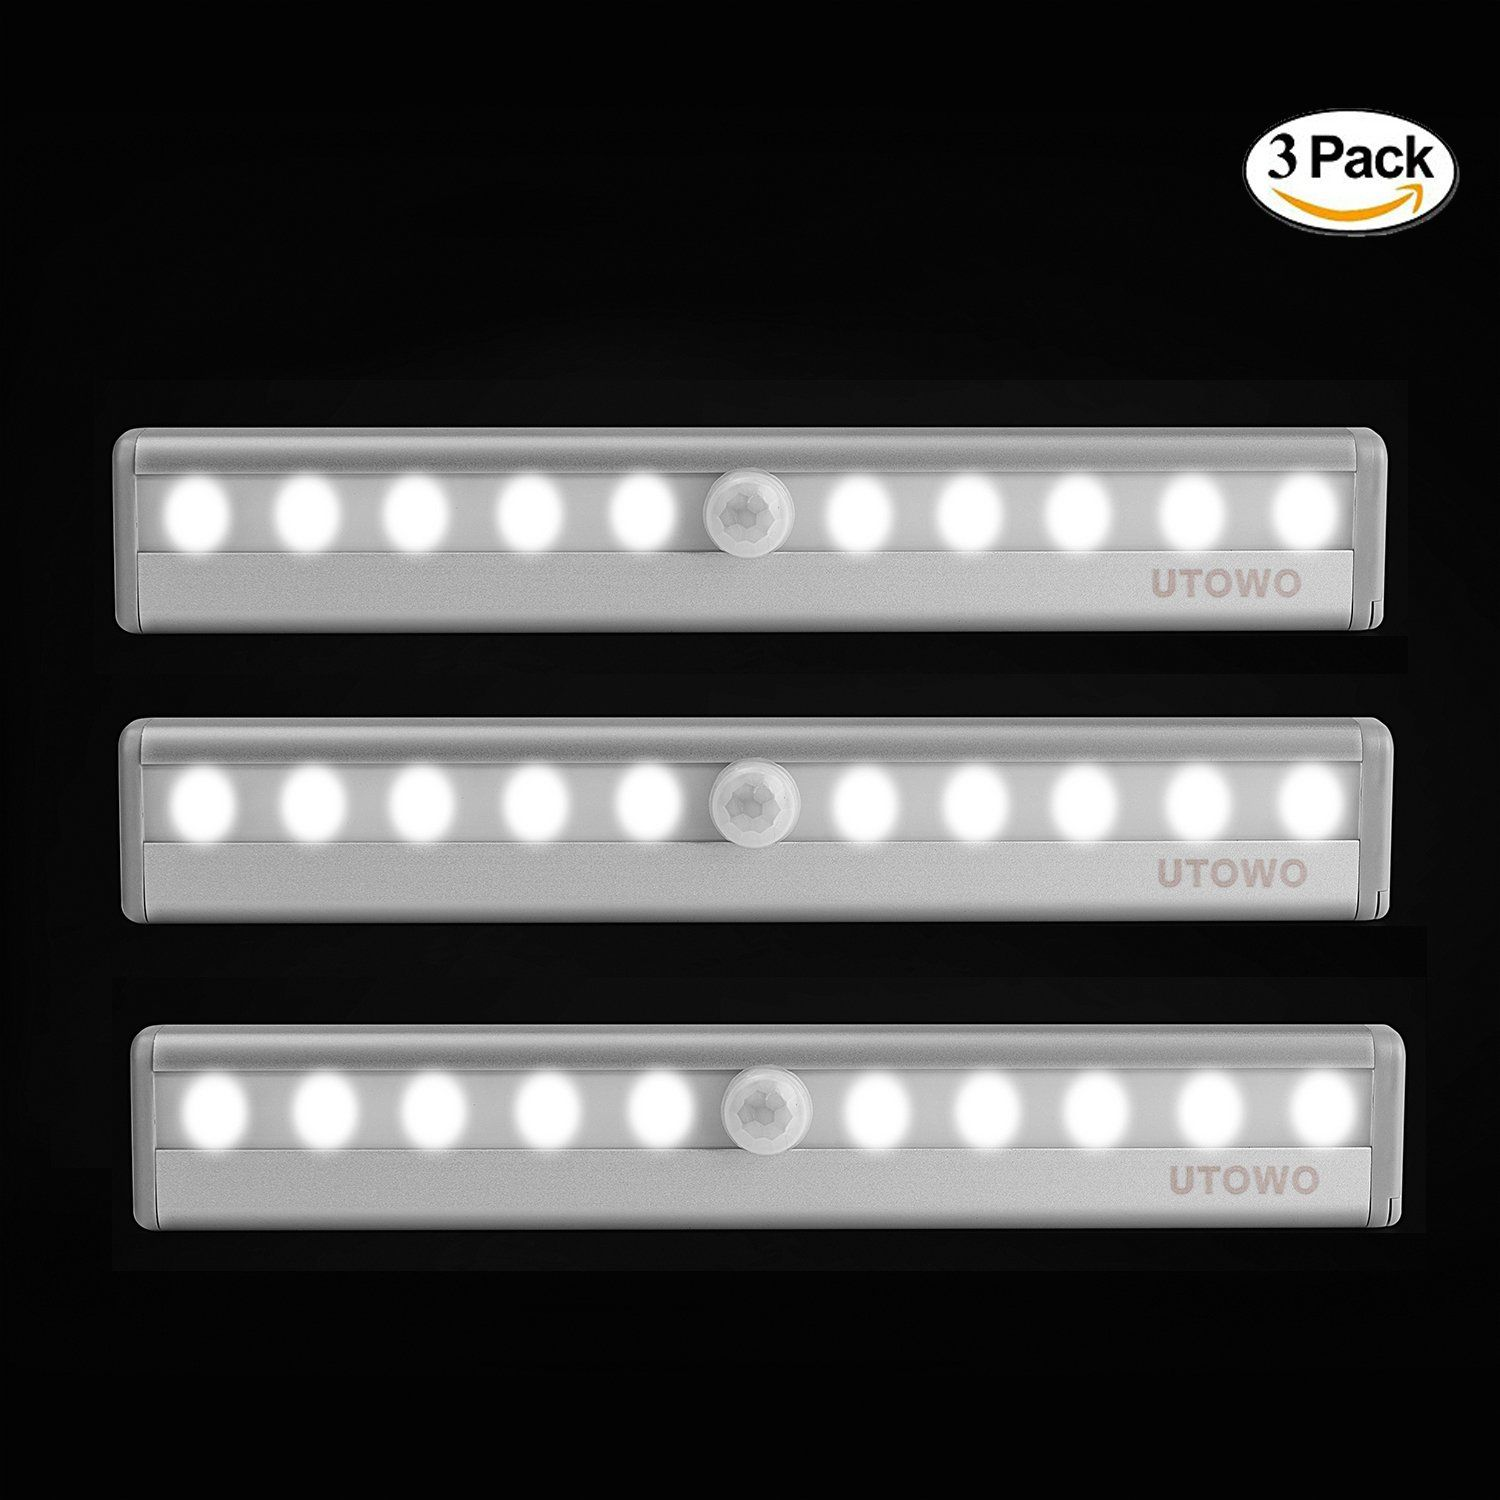 closet lighting battery. 3 Pack Motion Sensor Closet Lights Portable Wireless Under Cabinet Battery Operated For Kitchen Desk Room Bar With Magnetic Strip Stick-on Anywhere Lighting